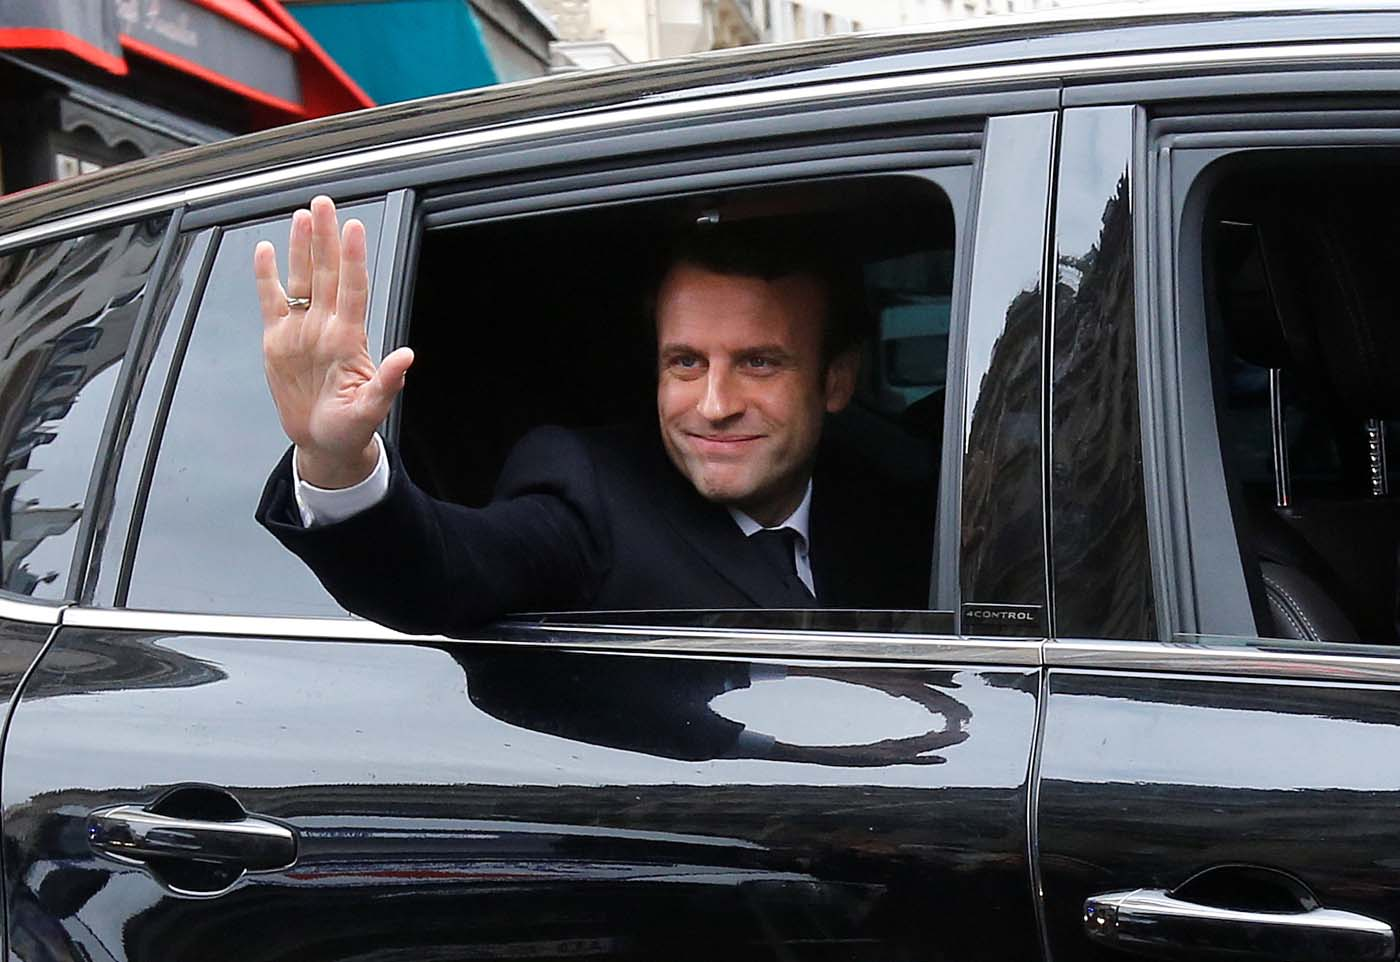 Emmanuel Macron, head of the political movement En Marche !, or Onwards !, and candidate for the 2017 presidential election, waves from his car as he leaves his home during the second round of the election, in Paris, France, May 7, 2017. REUTERS/Jean-Paul Pelissier TPX IMAGES OF THE DAY